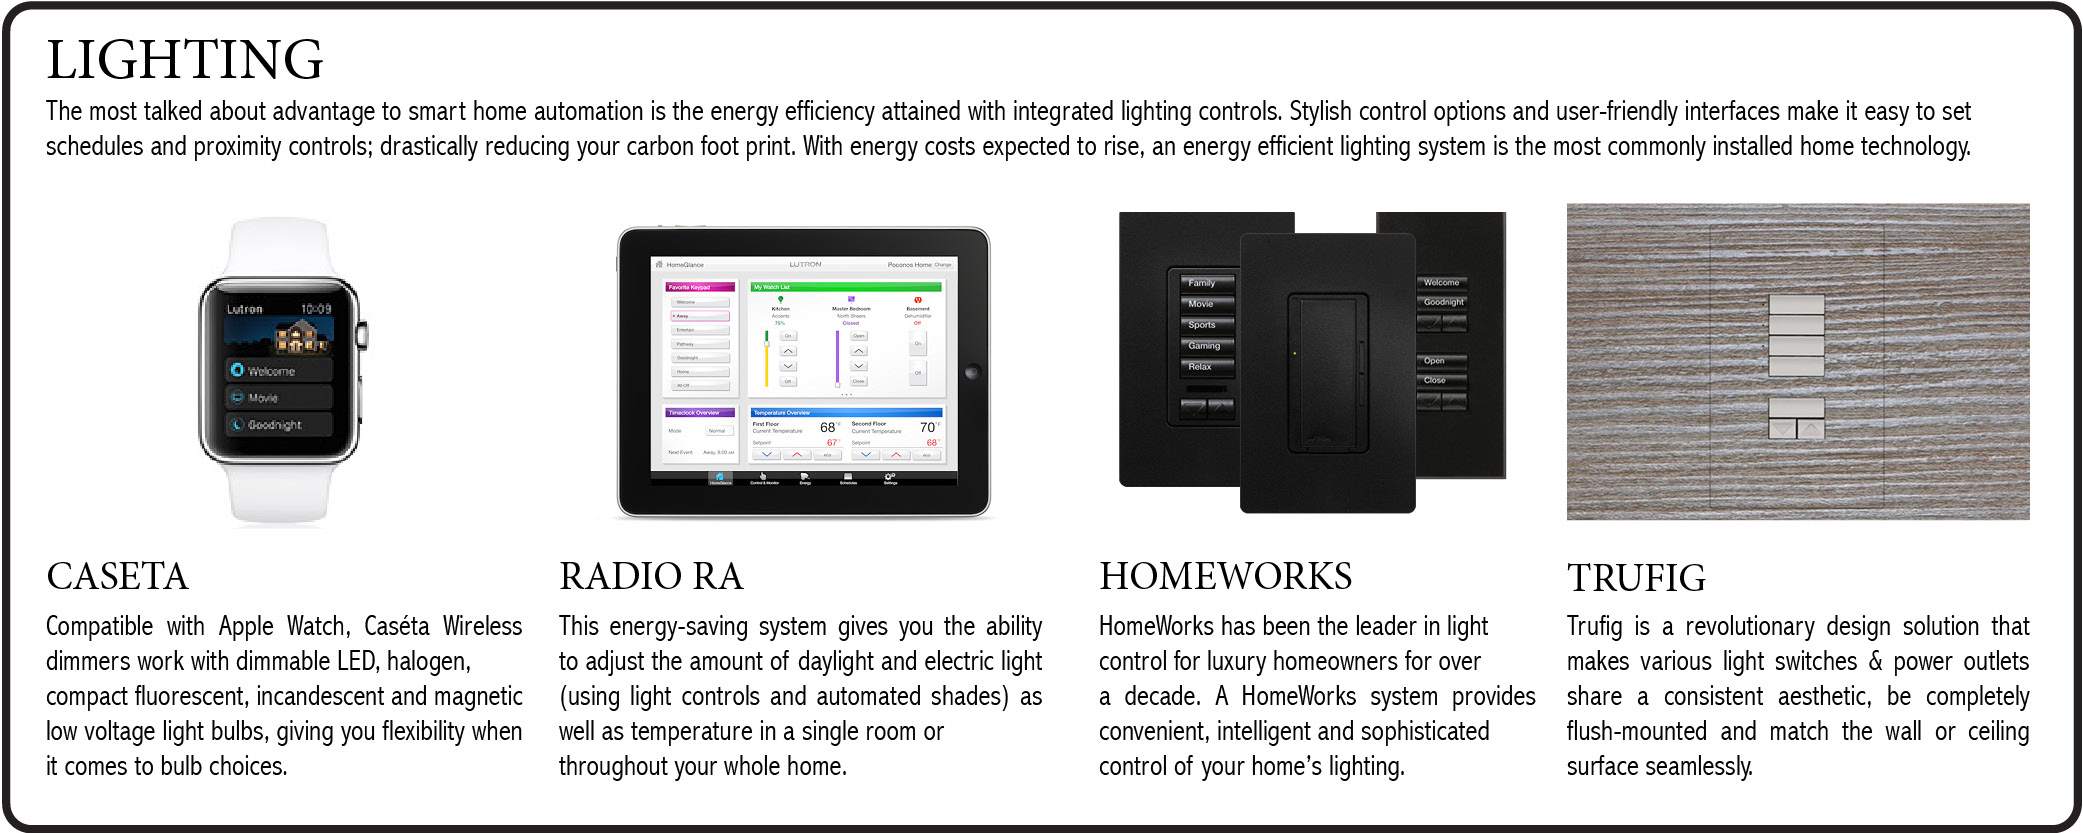 caseta-radio-ra-homeworks-trufig-lighting-lutron-nj